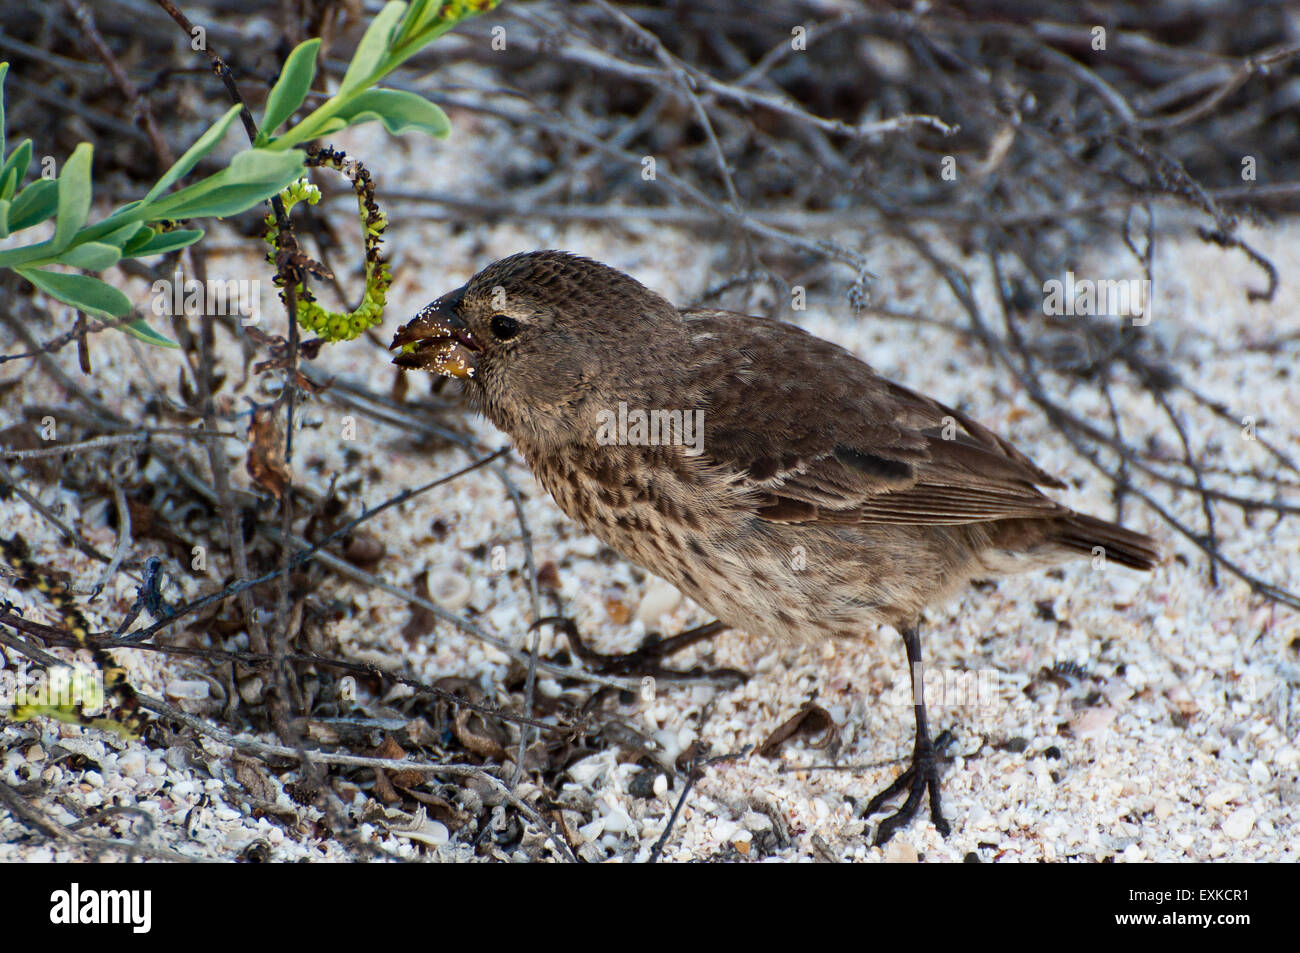 Darwin's finch on ground eating seed, Galapagos Islands, Ecuador - Stock Image